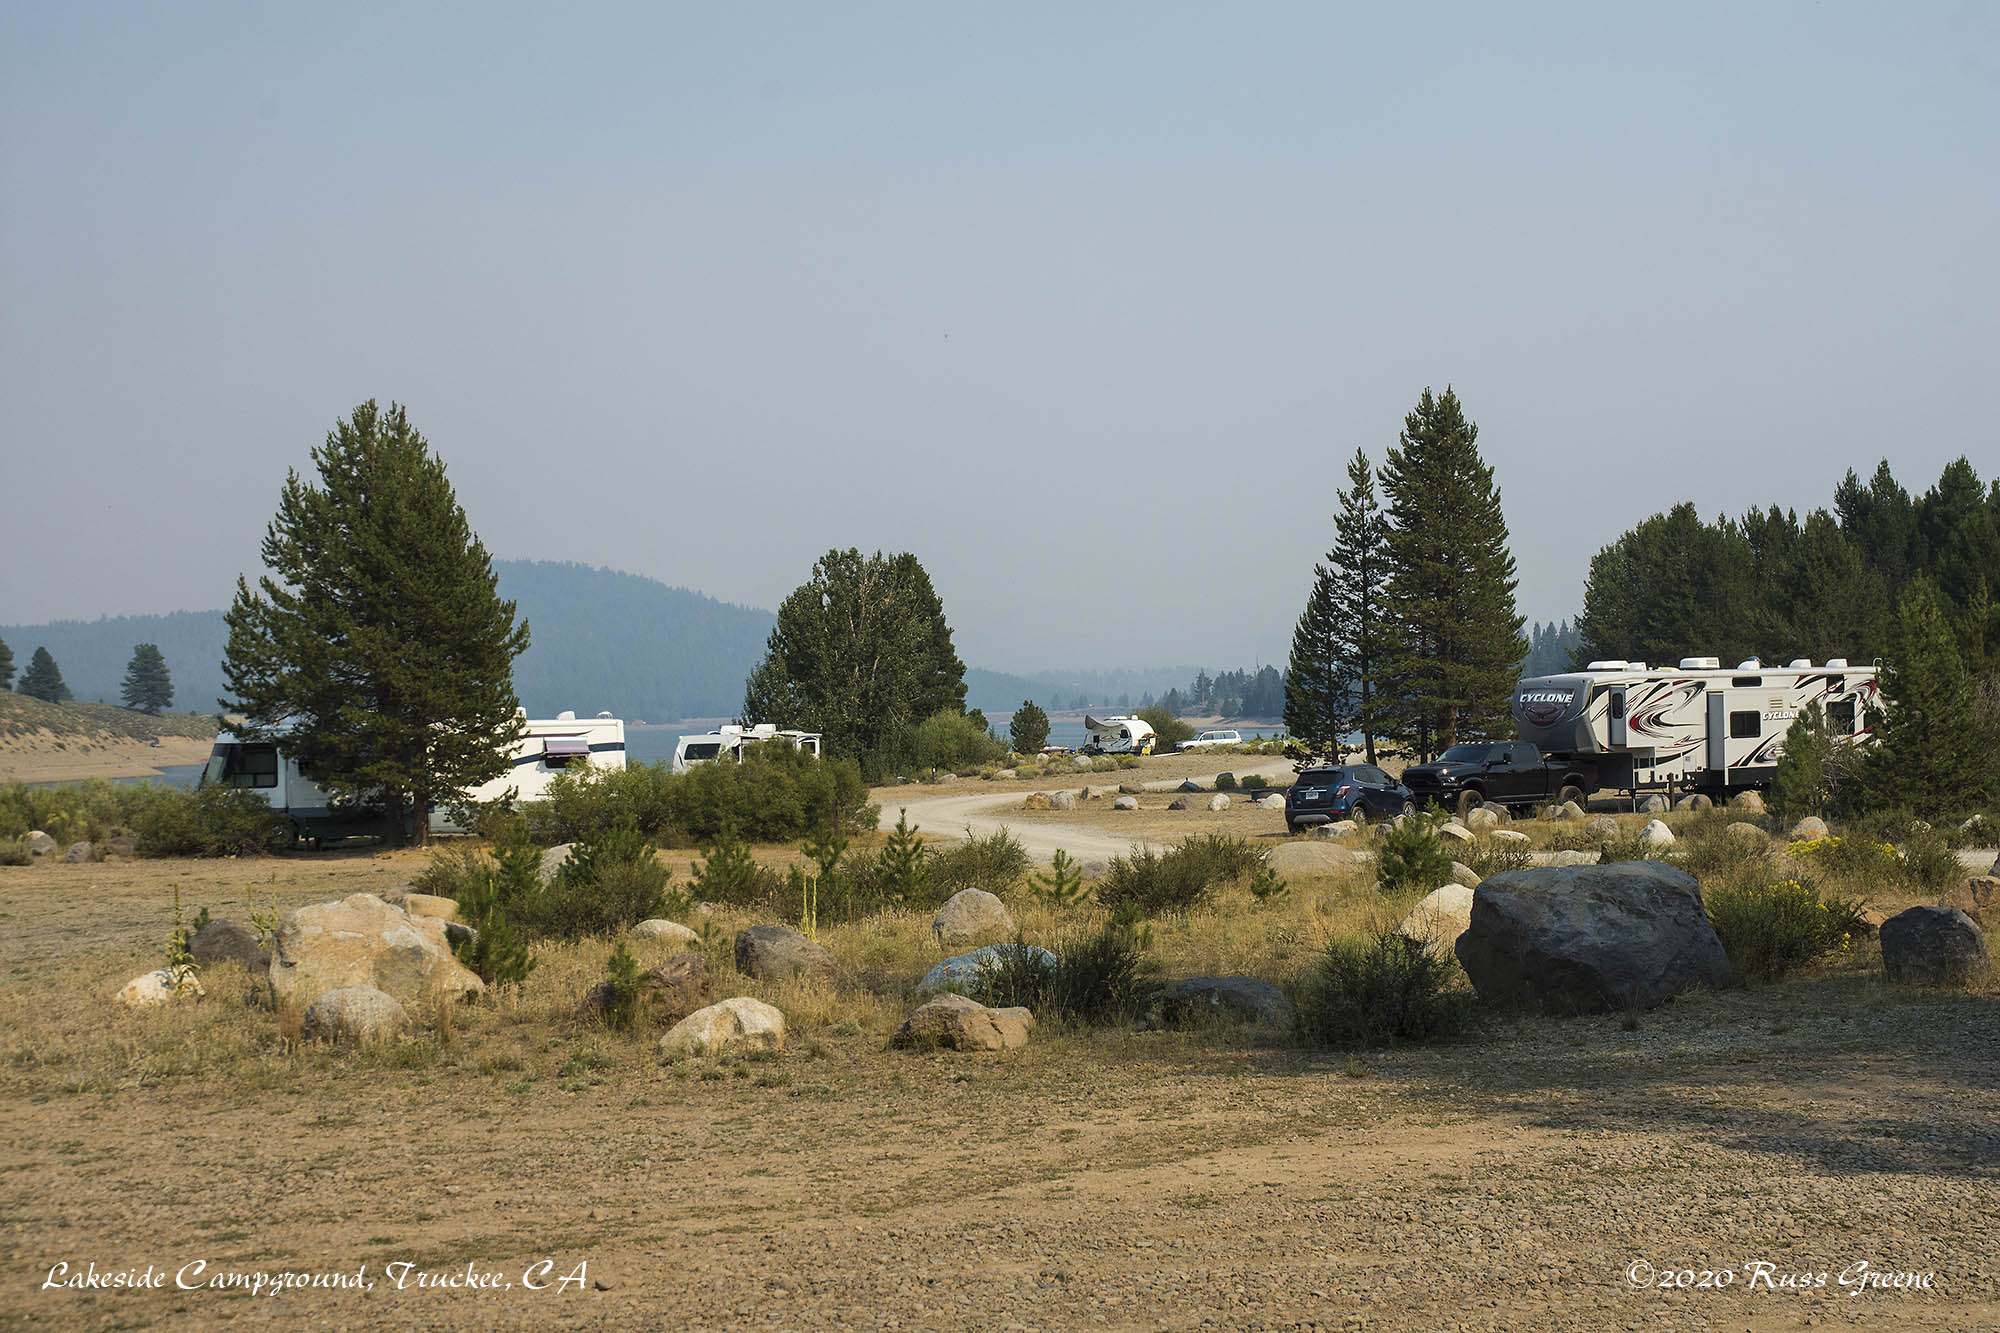 Lakeside Campground, Truckee, CA